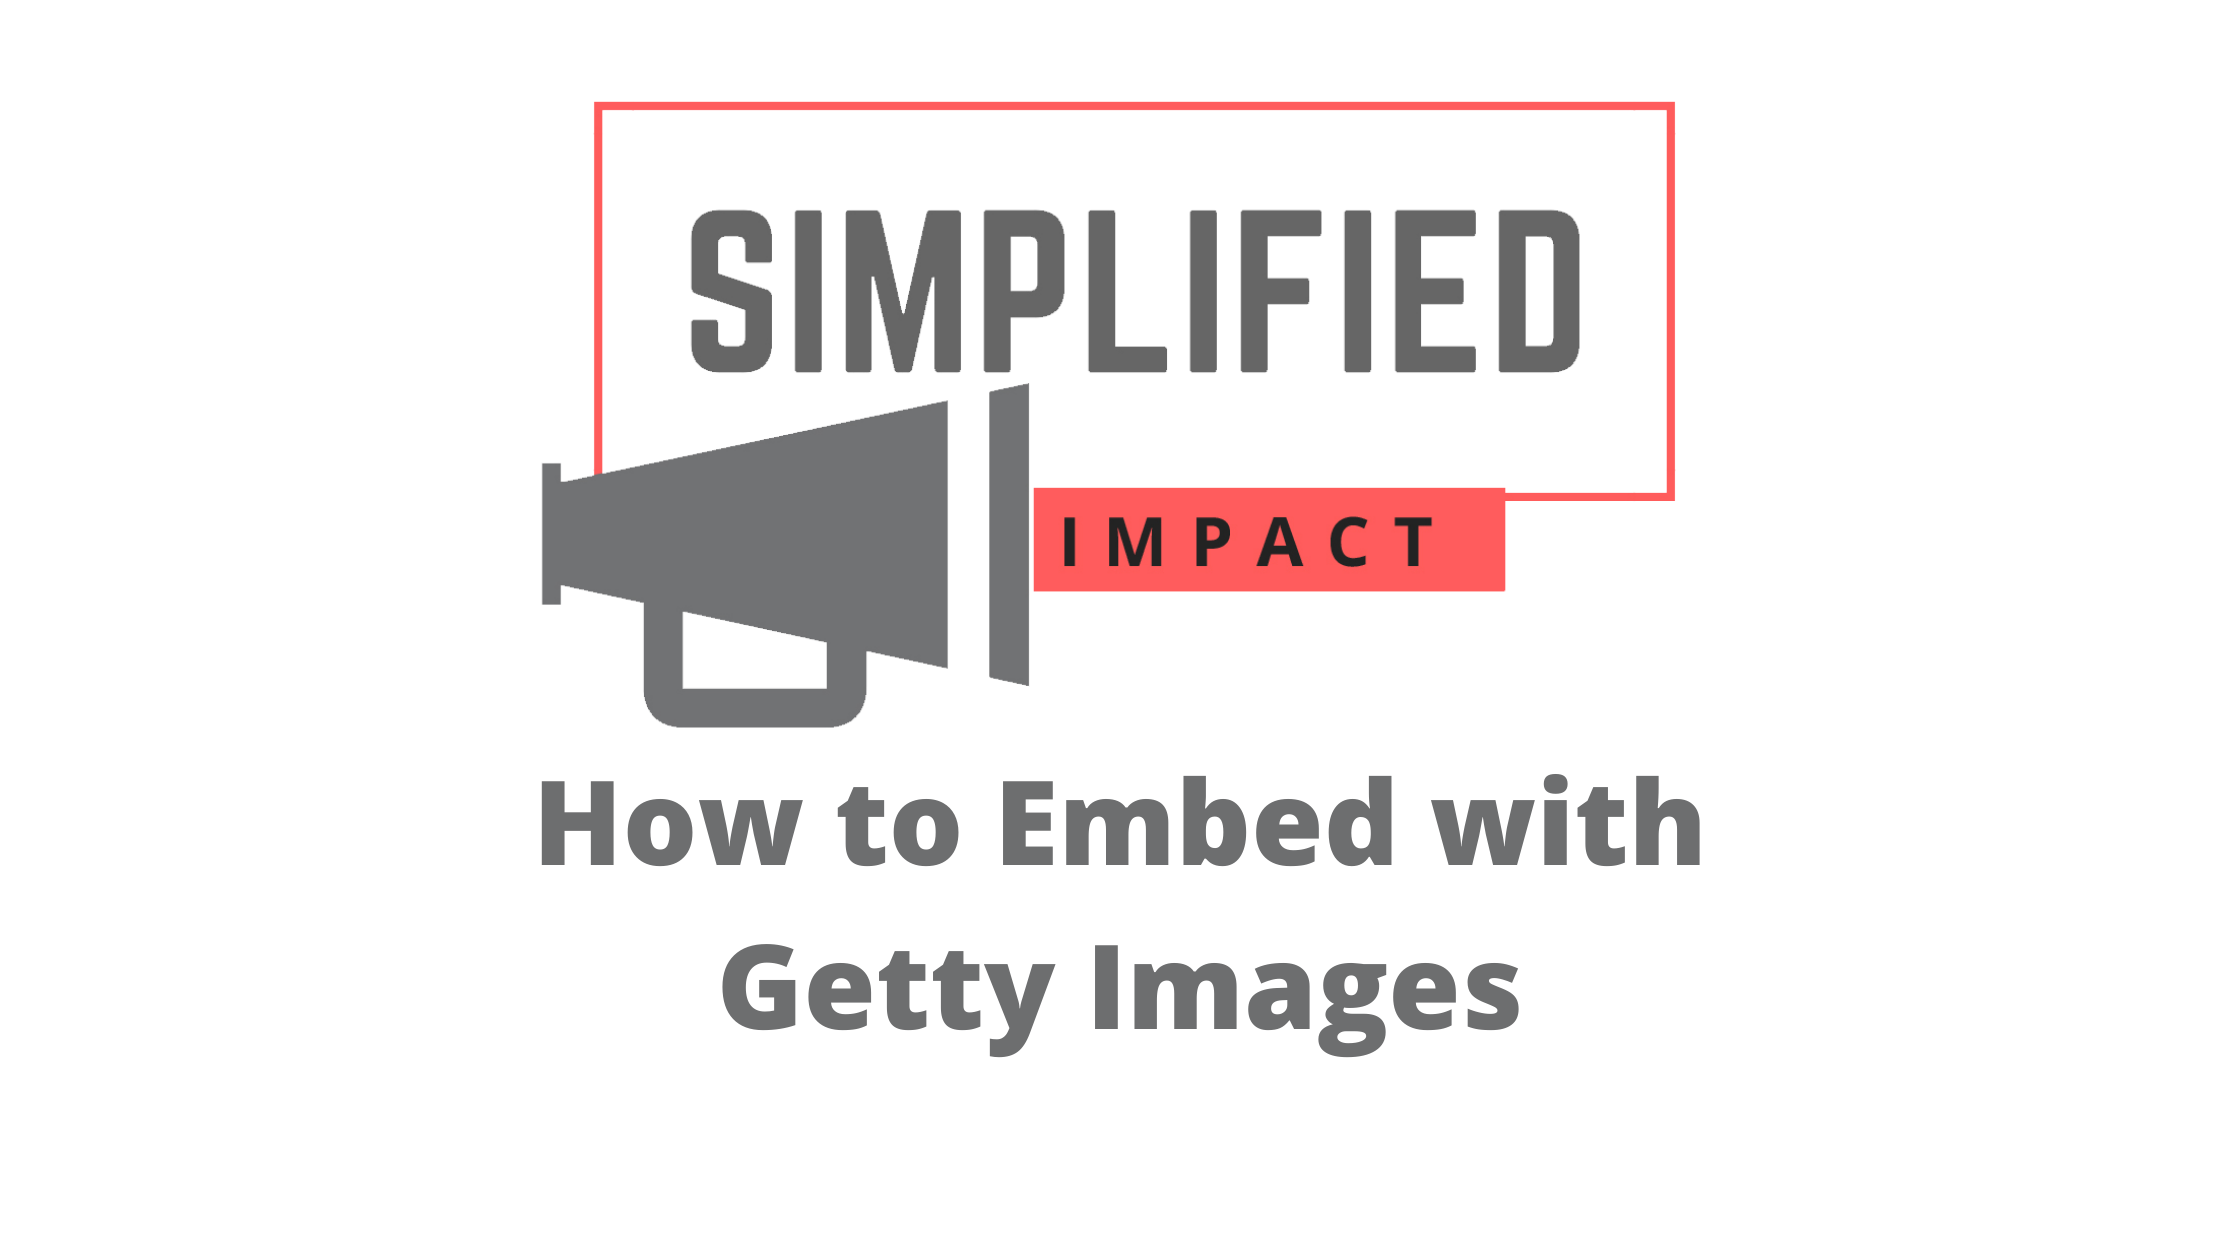 How to embed with Getty Images